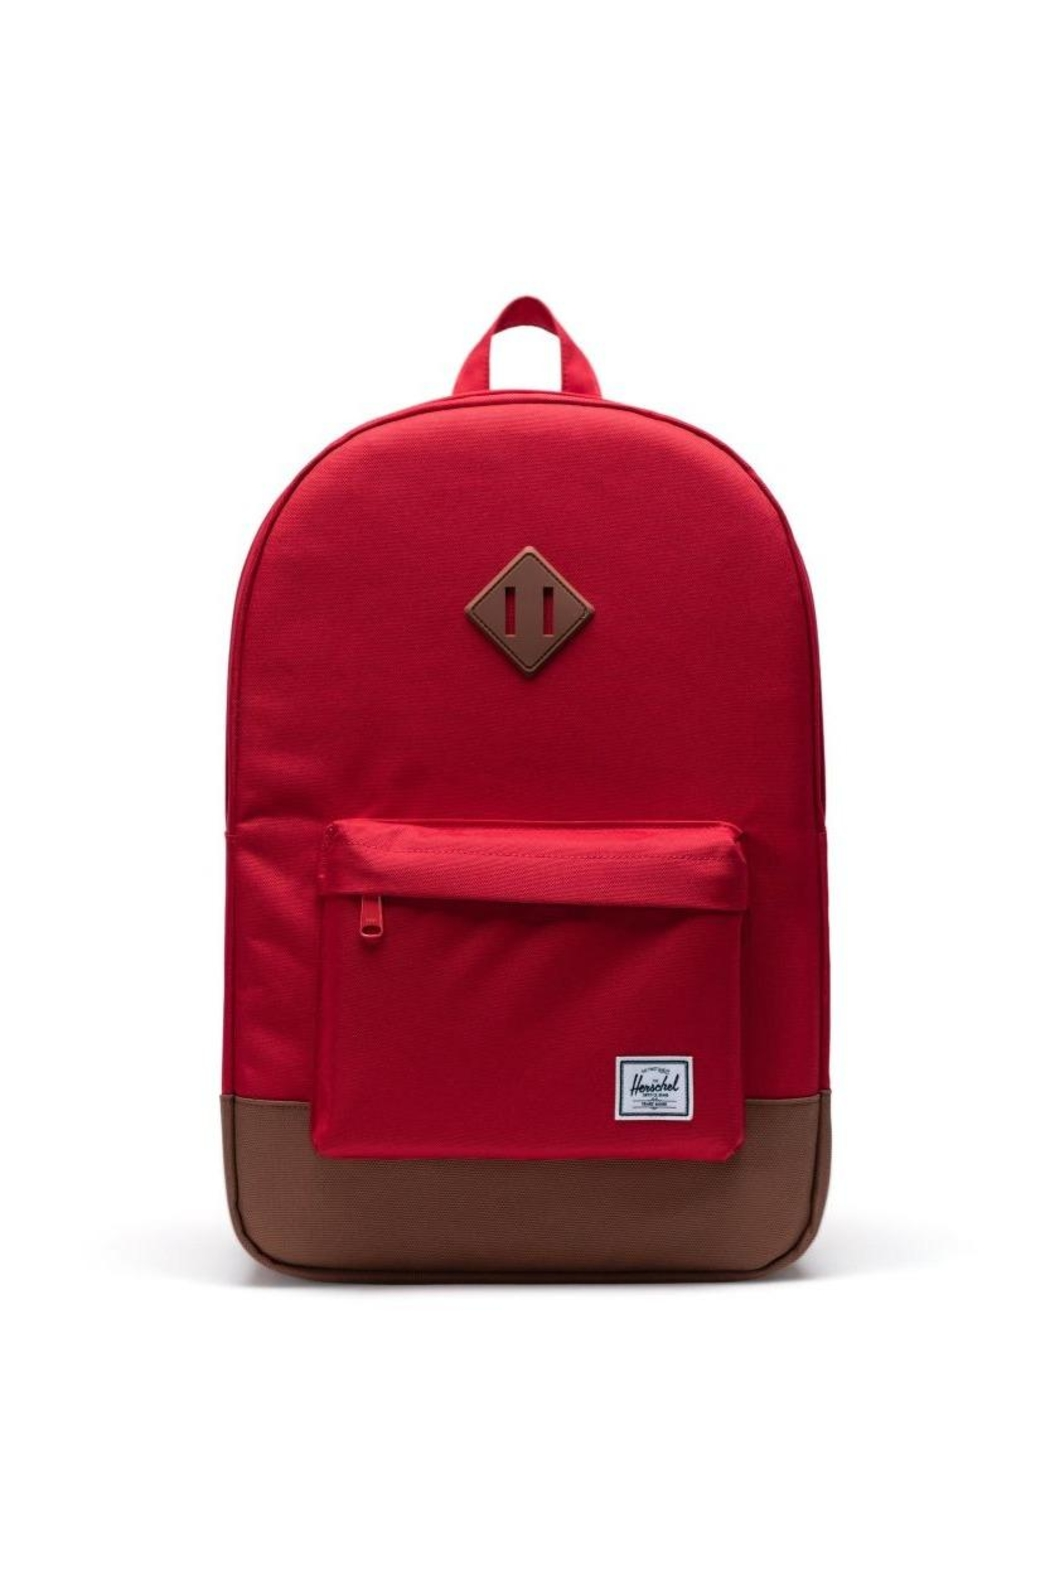 Herschel Supply Co. Red Brown Backpack - Main Image